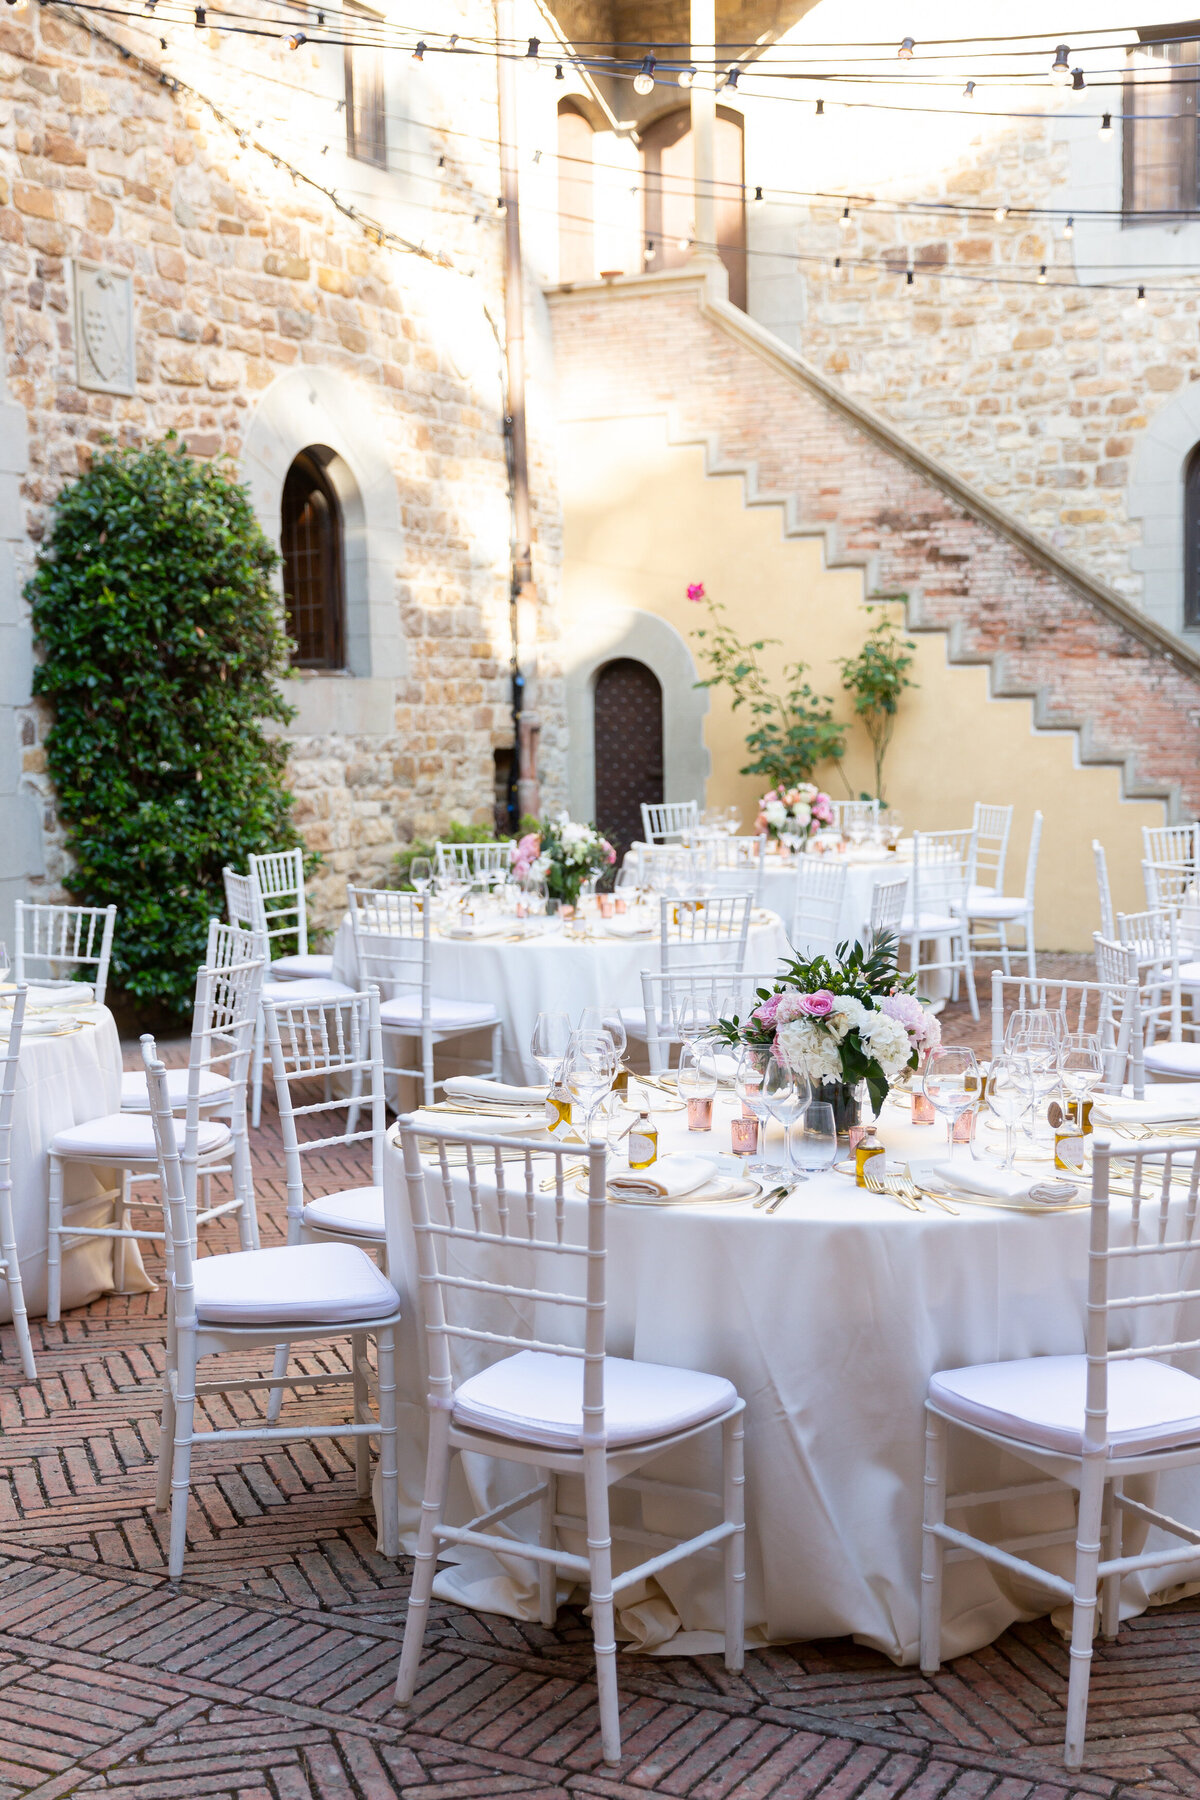 Tuscany_Italy_0201_Helga_Marc_Wedding_2360